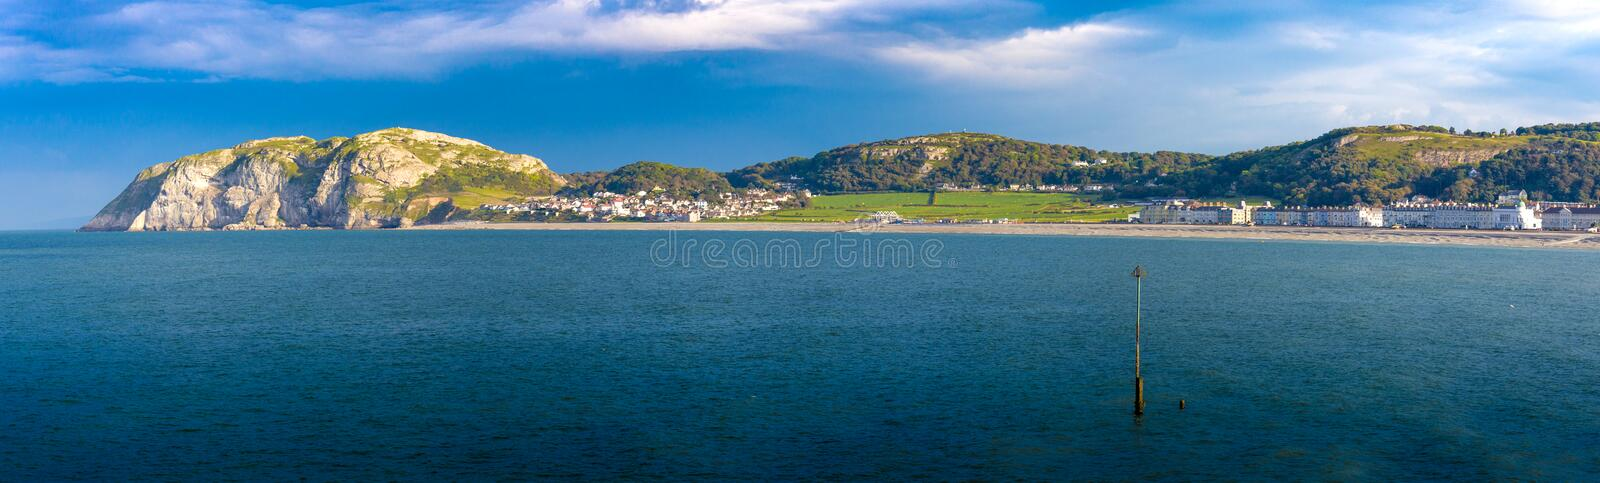 Llandudno bay. Llandudno north wales UK. Picture of the little Orme taken from Llandudno pier royalty free stock photography